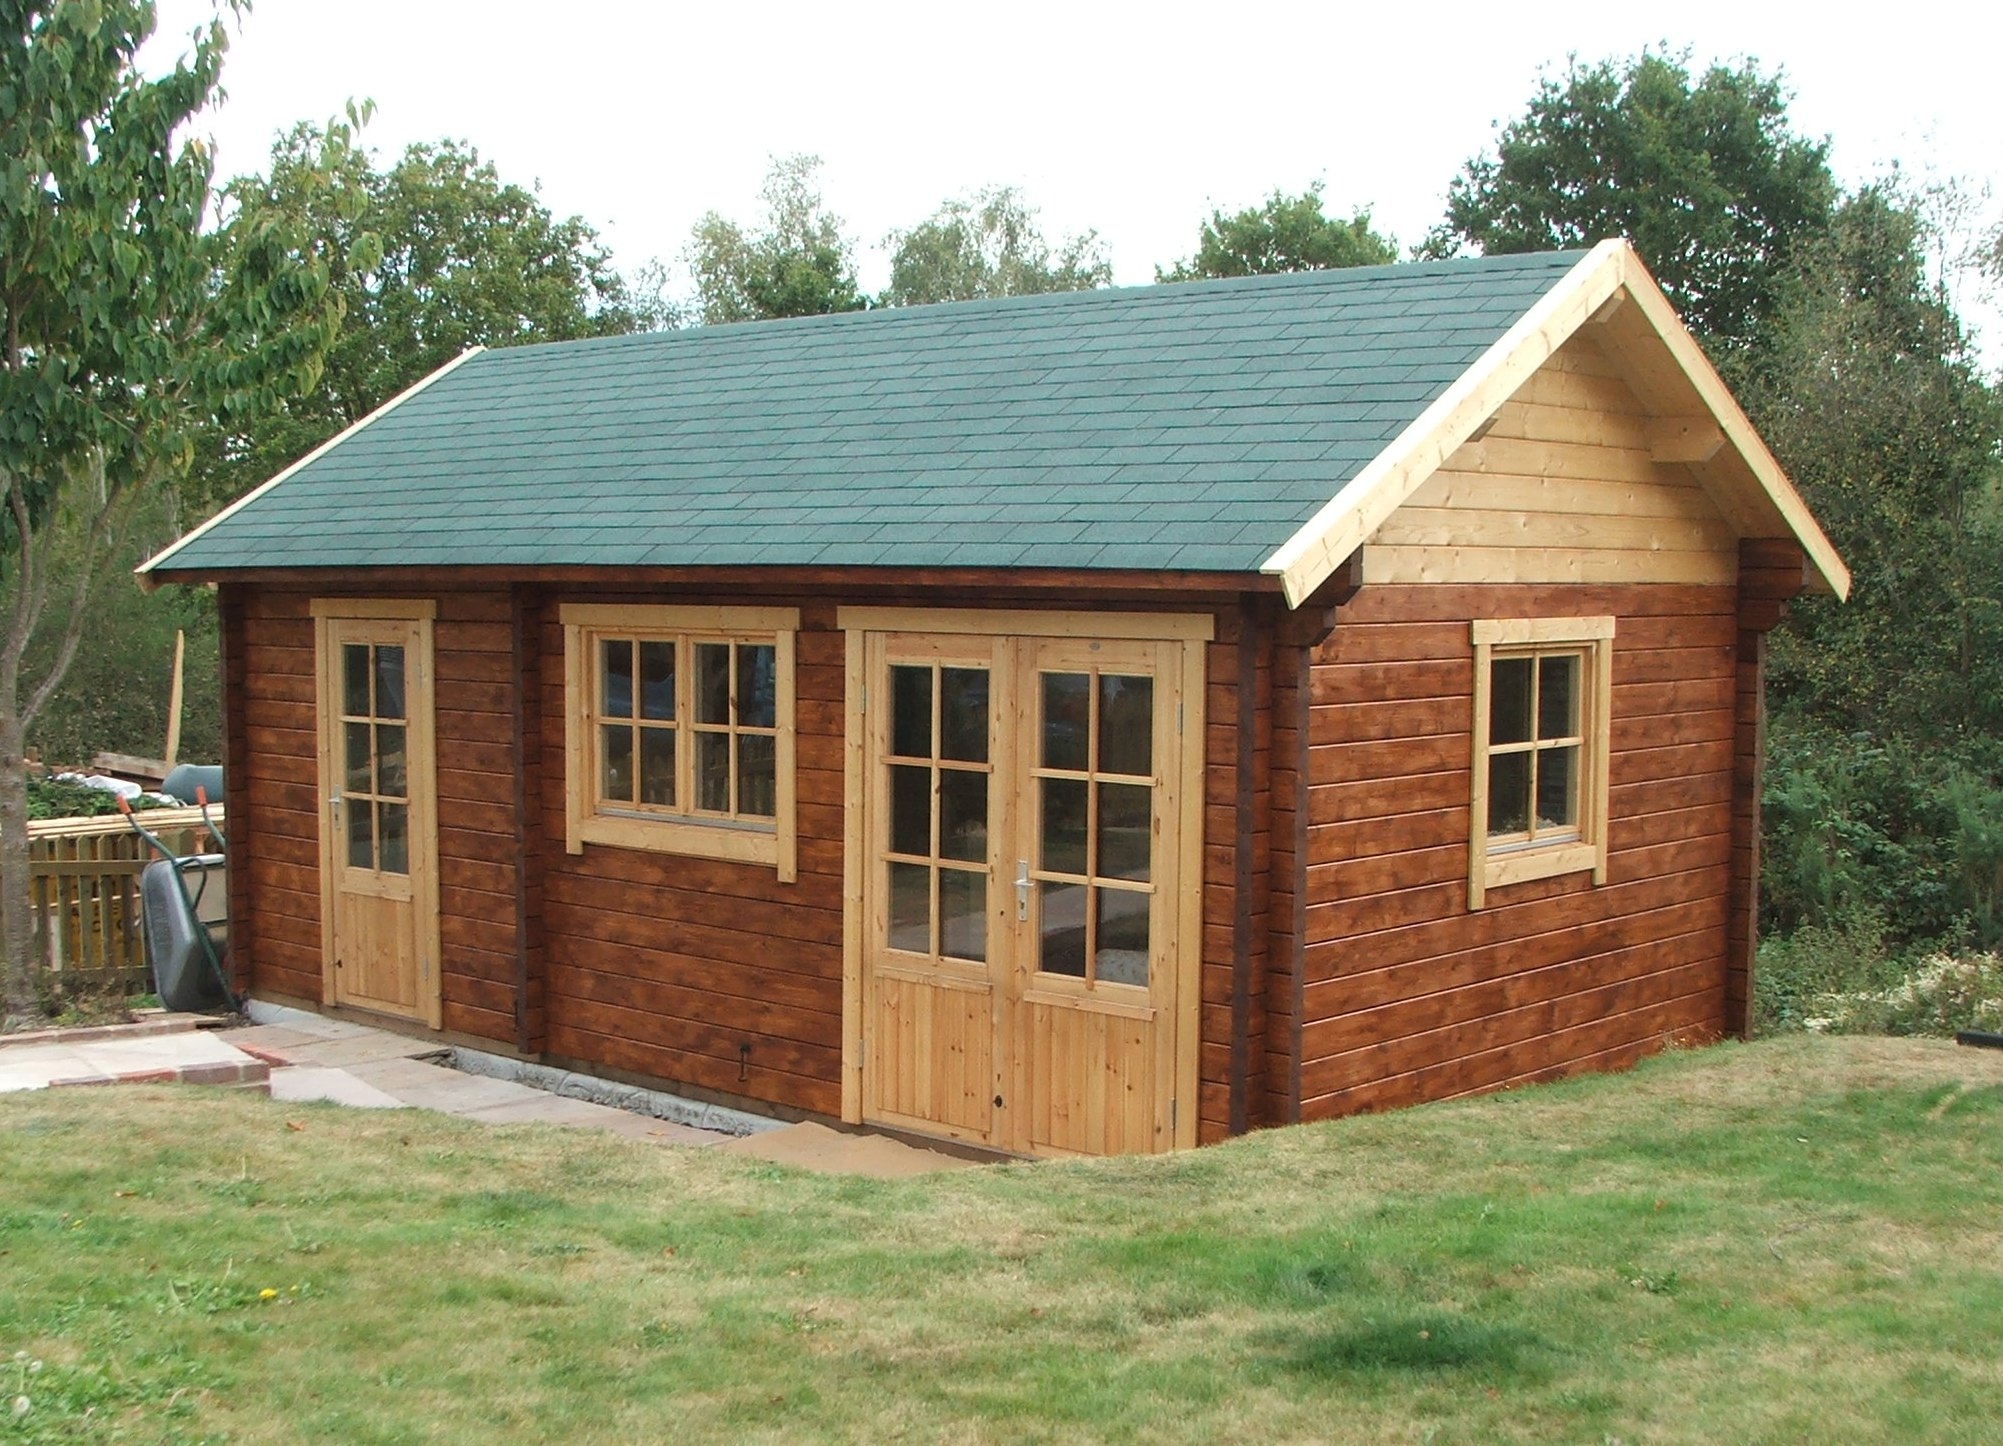 Perfect Cabins Gallery Bespoke Cabins. Full resolution  image, nominally Width 2003 Height 1446 pixels, image with #734328.